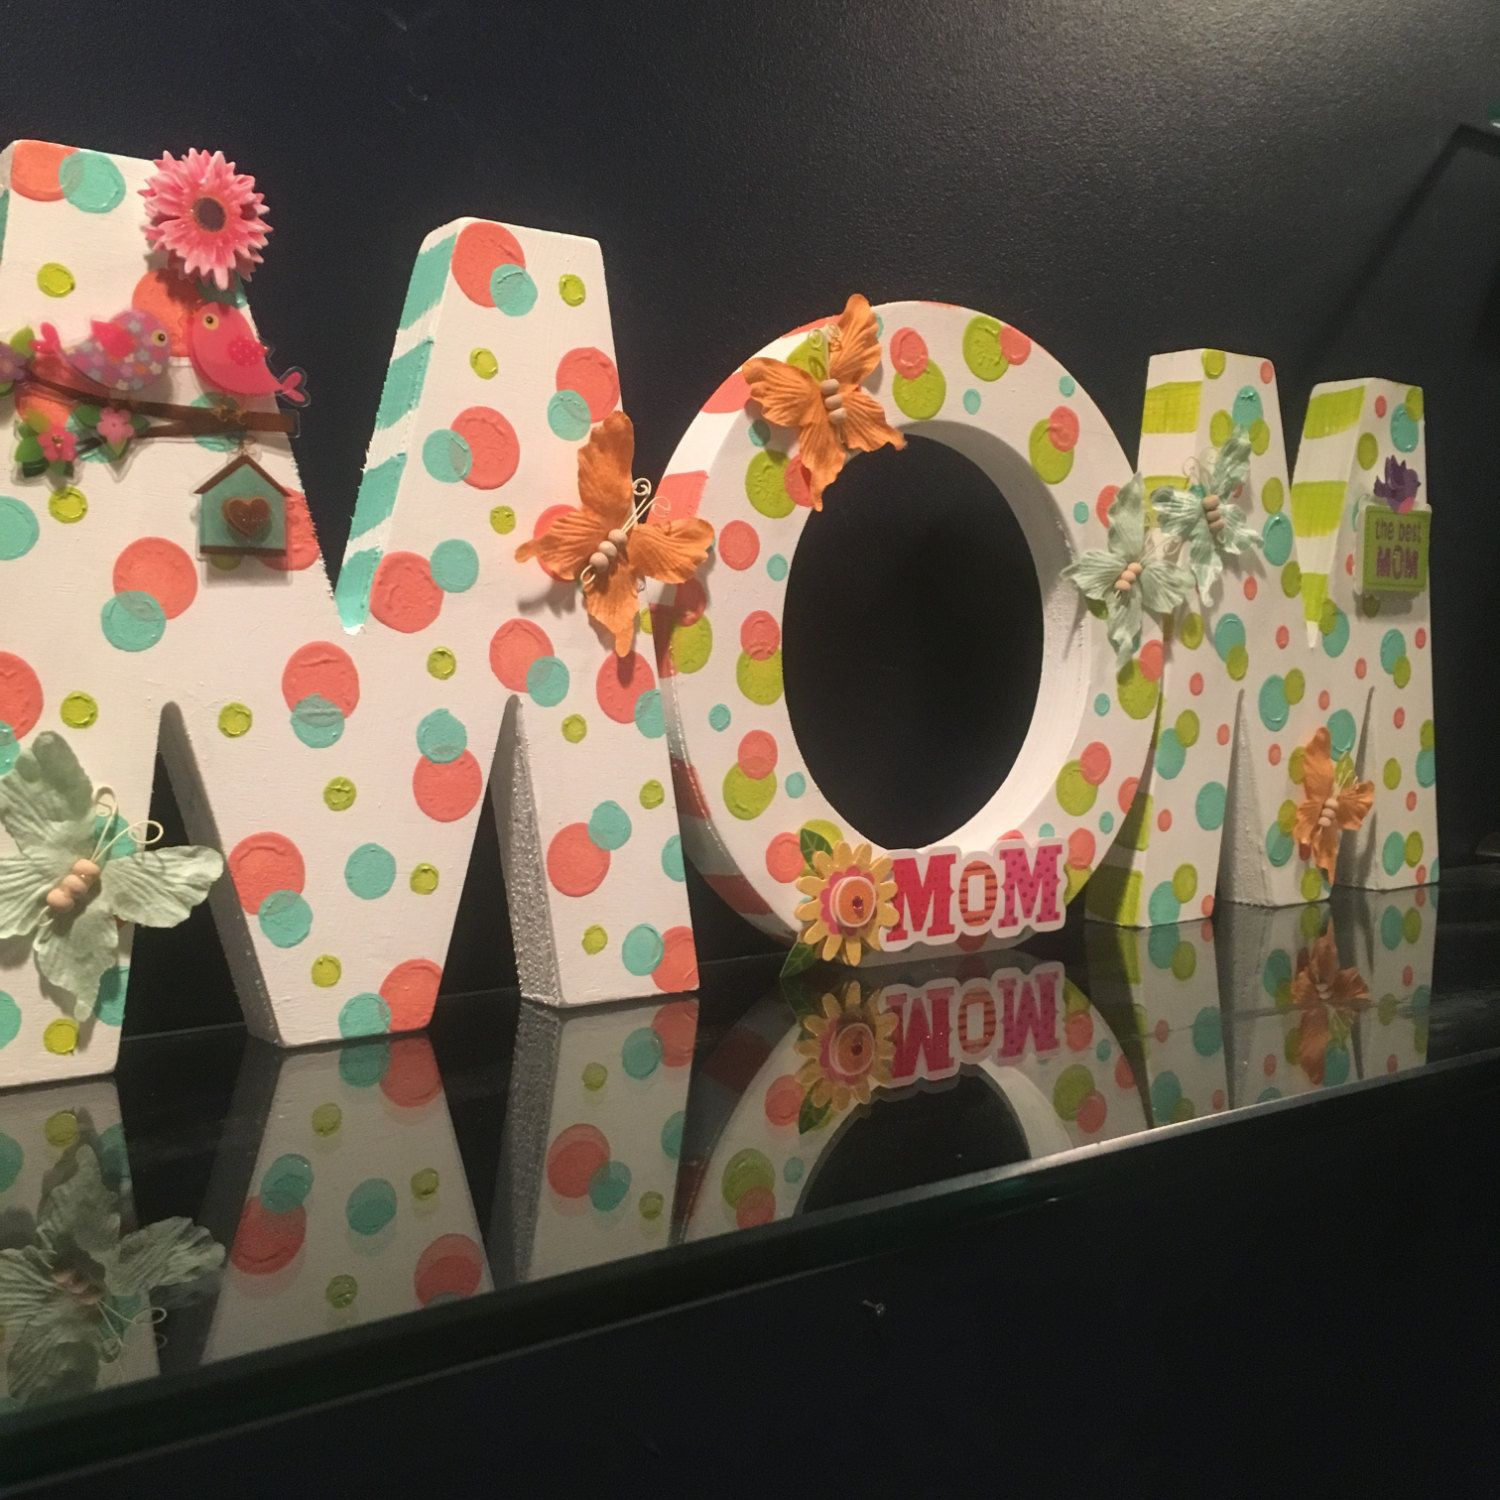 Mom Wood Block Letters MotherS Day Gift Gift For Mom MomS